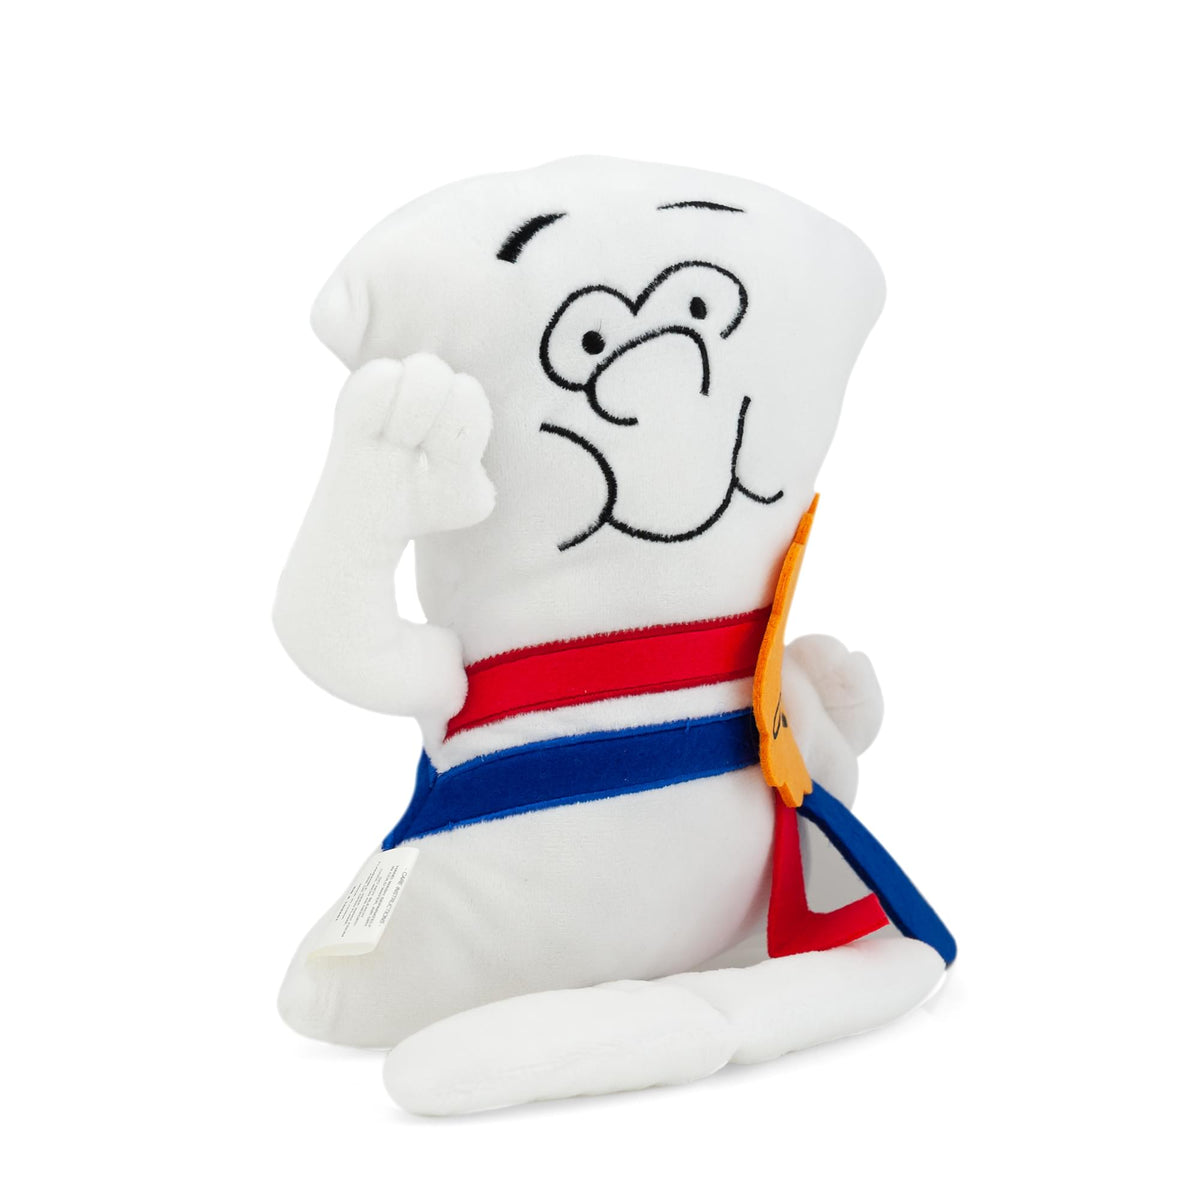 Schoolhouse Rock! Law Plush Character | I'm Just A Bill | 9.5 Inches Tall